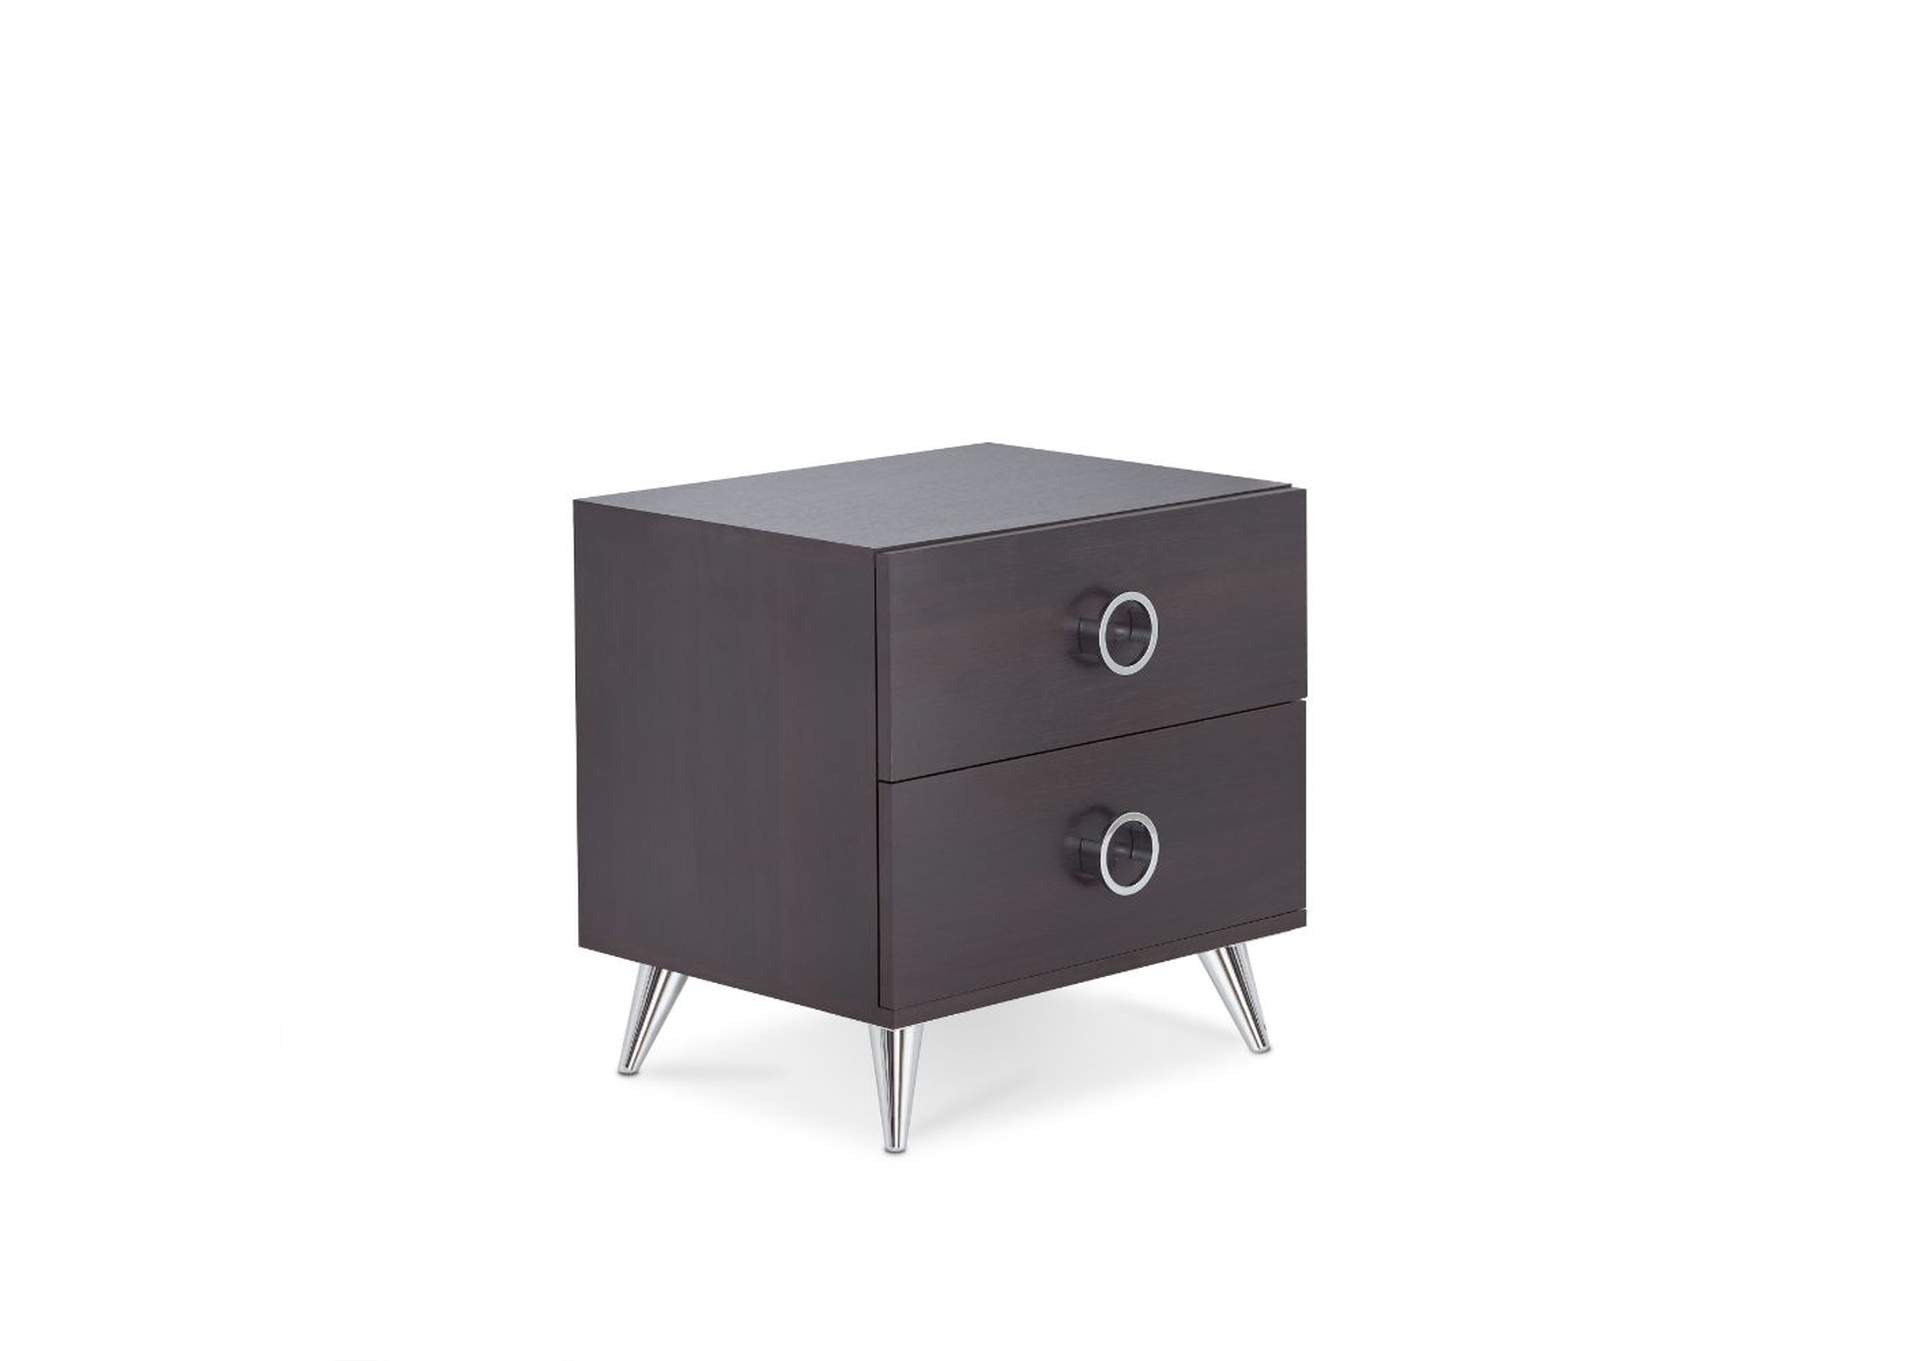 Elms Espresso Accent Table,Acme